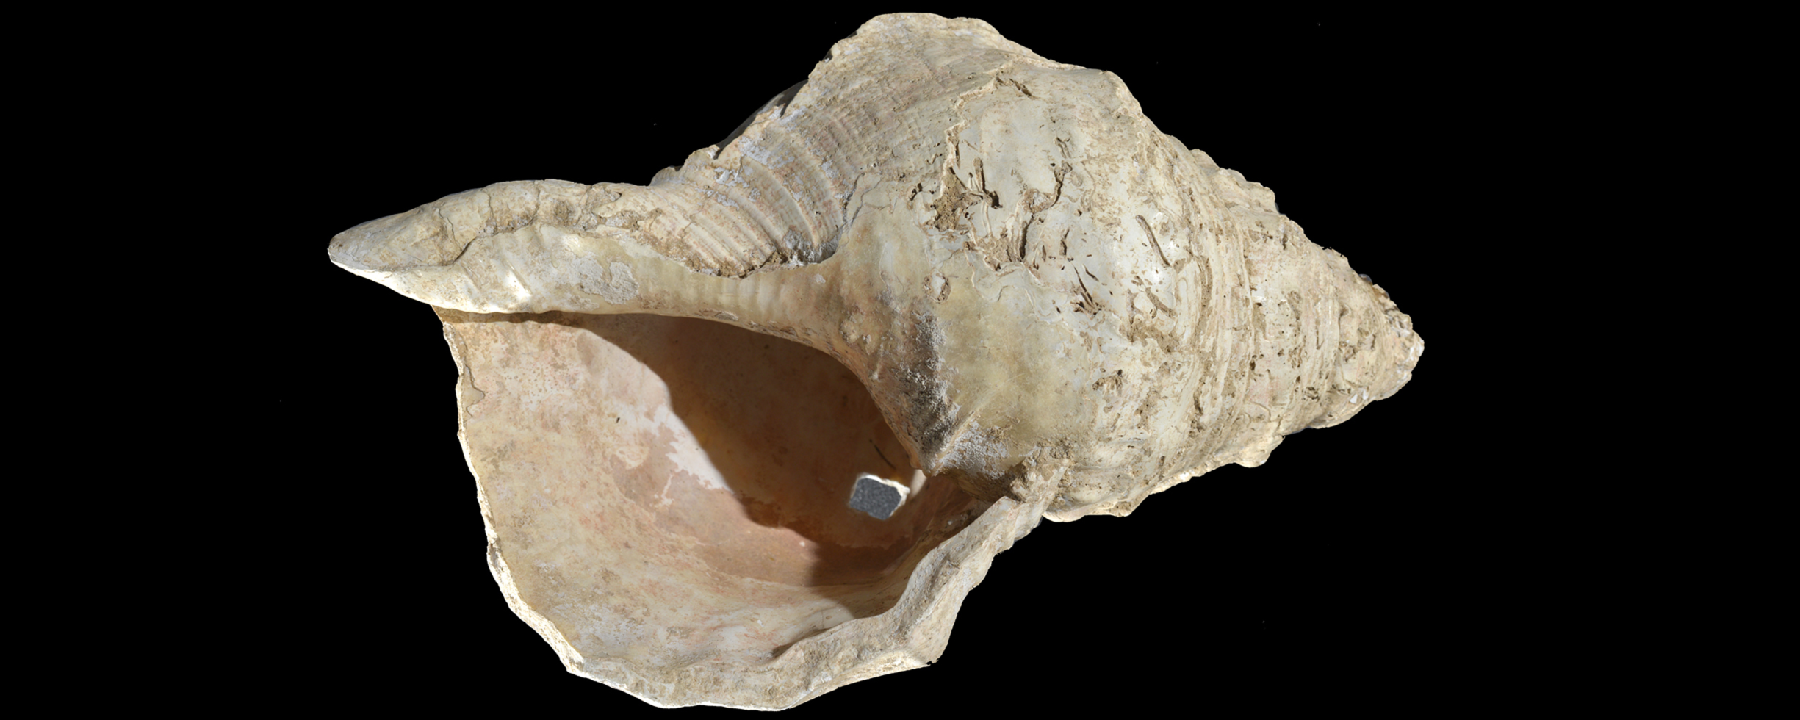 Conch Horn Finds Its Song Again After 17,000 Years